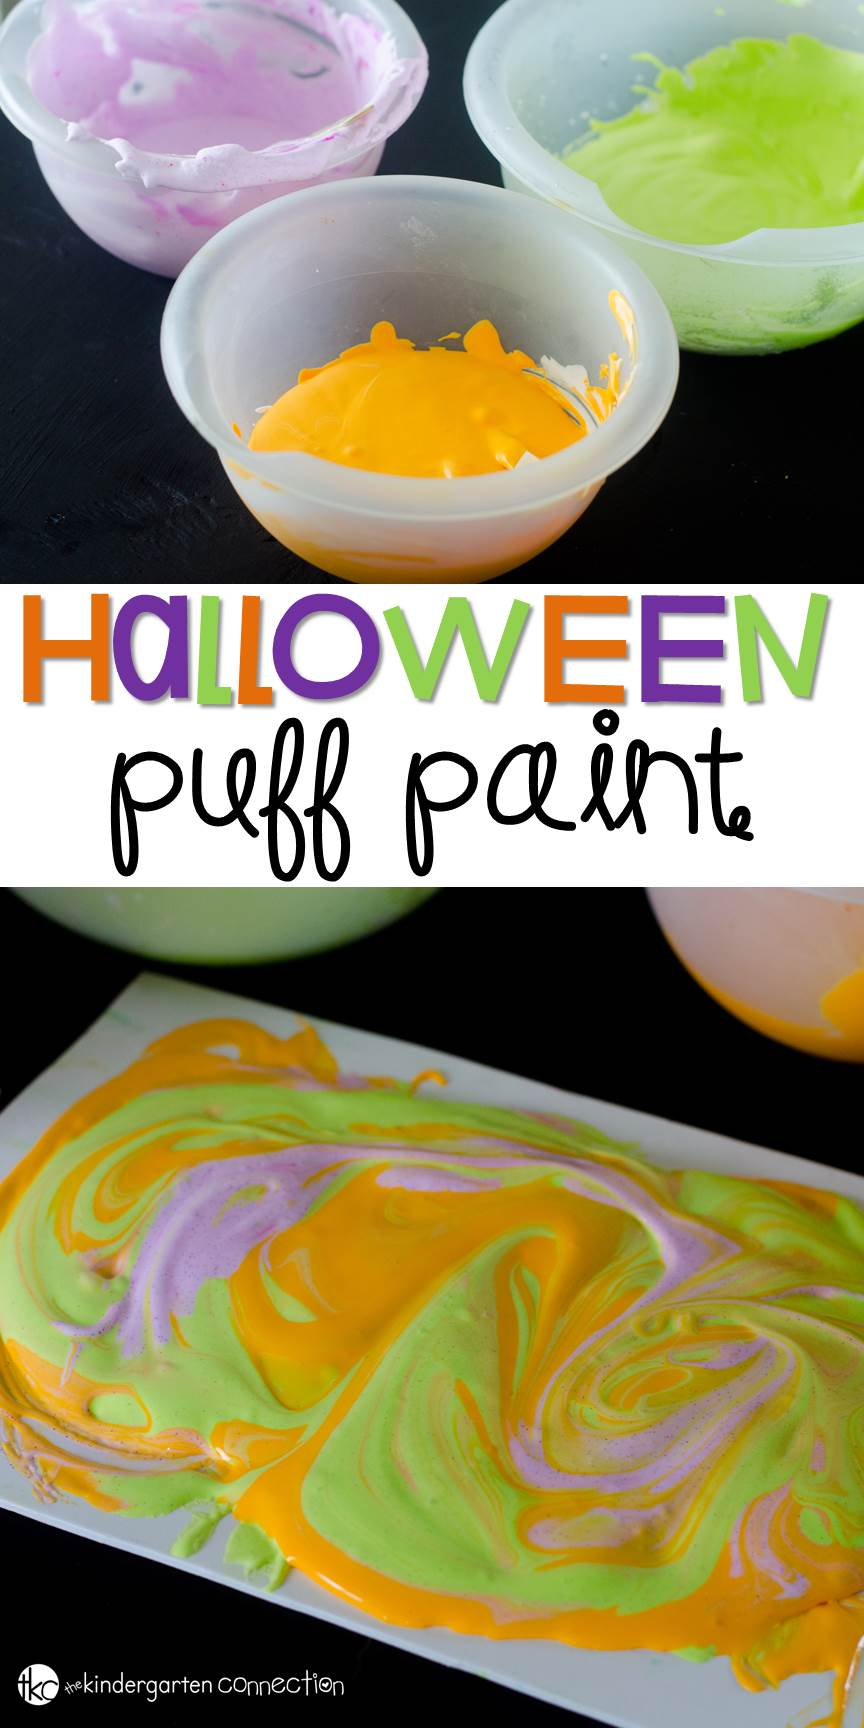 Easy to make and oh so fun to paint with, this Halloween puff paint recipe is the perfect Halloween sensory activity for kids!